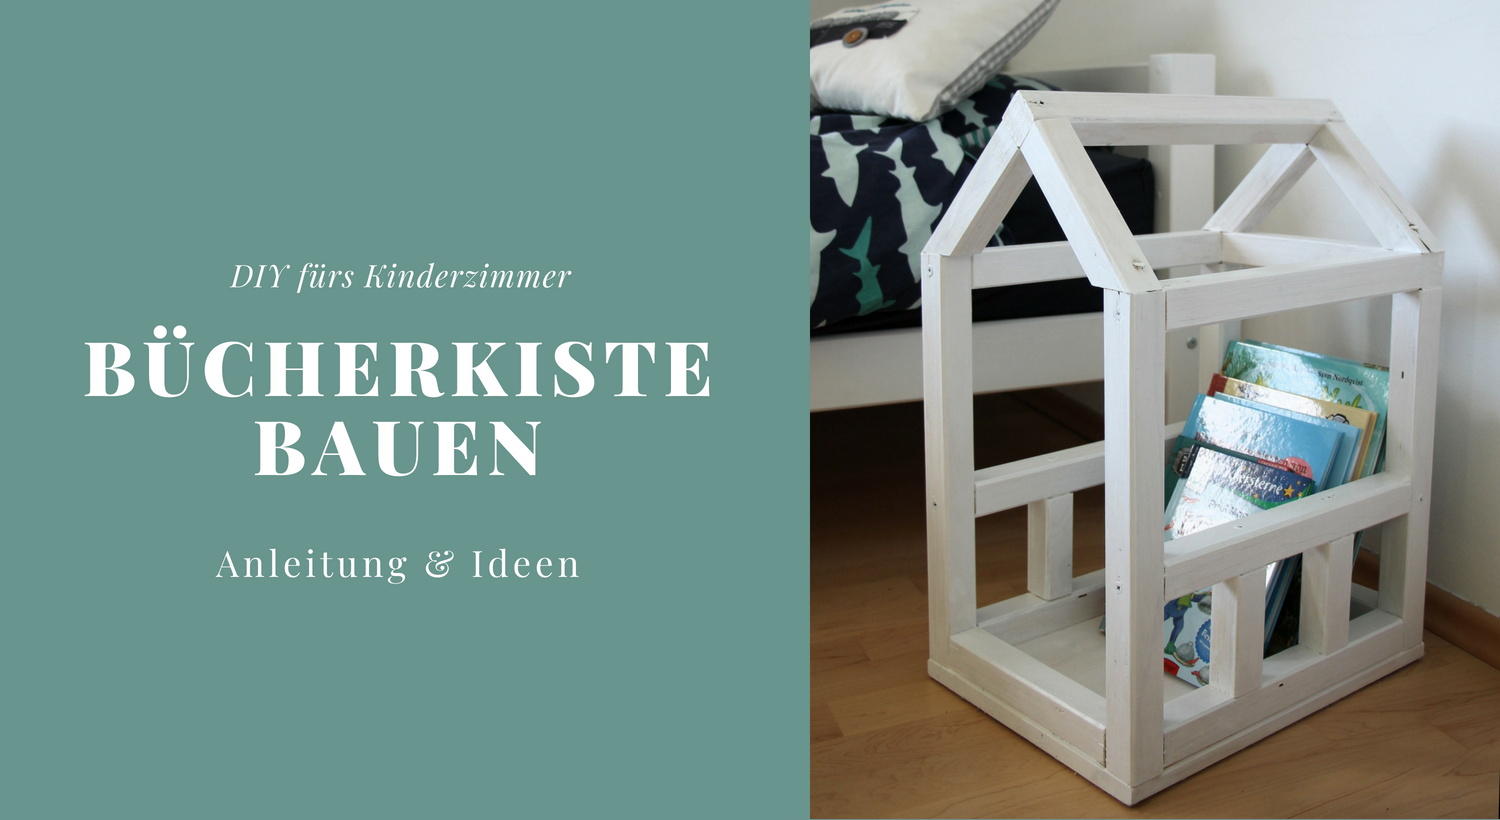 b cherkiste kinder diy lavendelblog. Black Bedroom Furniture Sets. Home Design Ideas